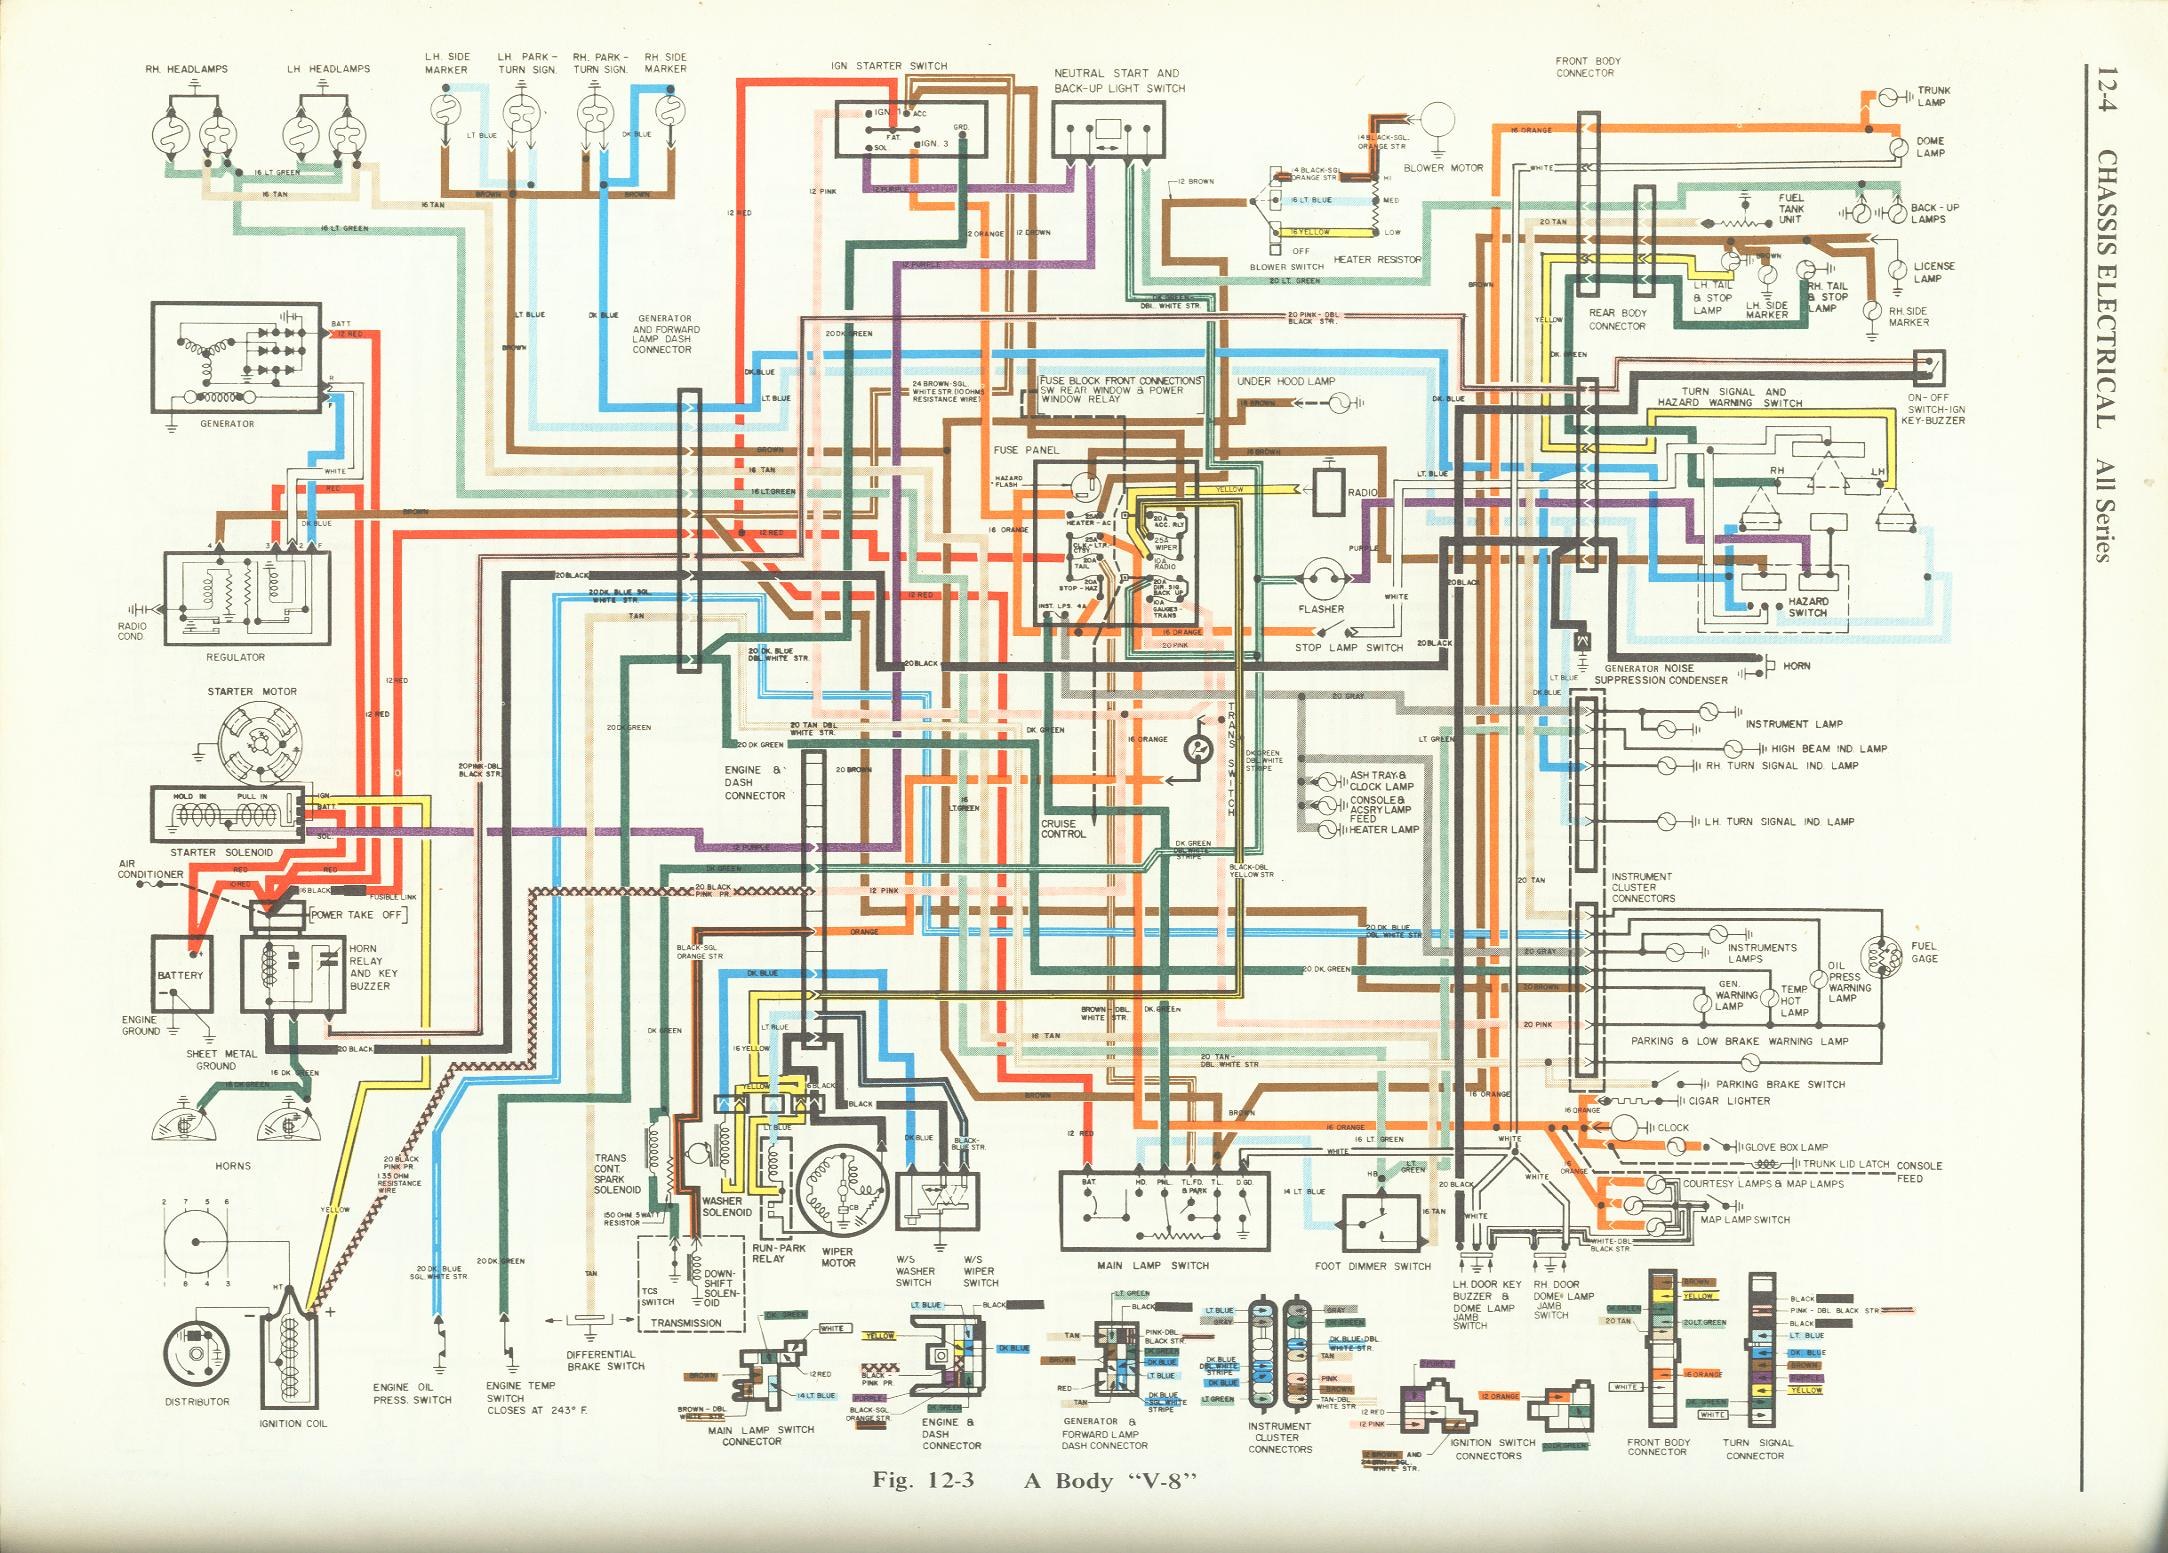 Wiring diagram - Hot Rod Forum : Hotrodders Bulletin Board